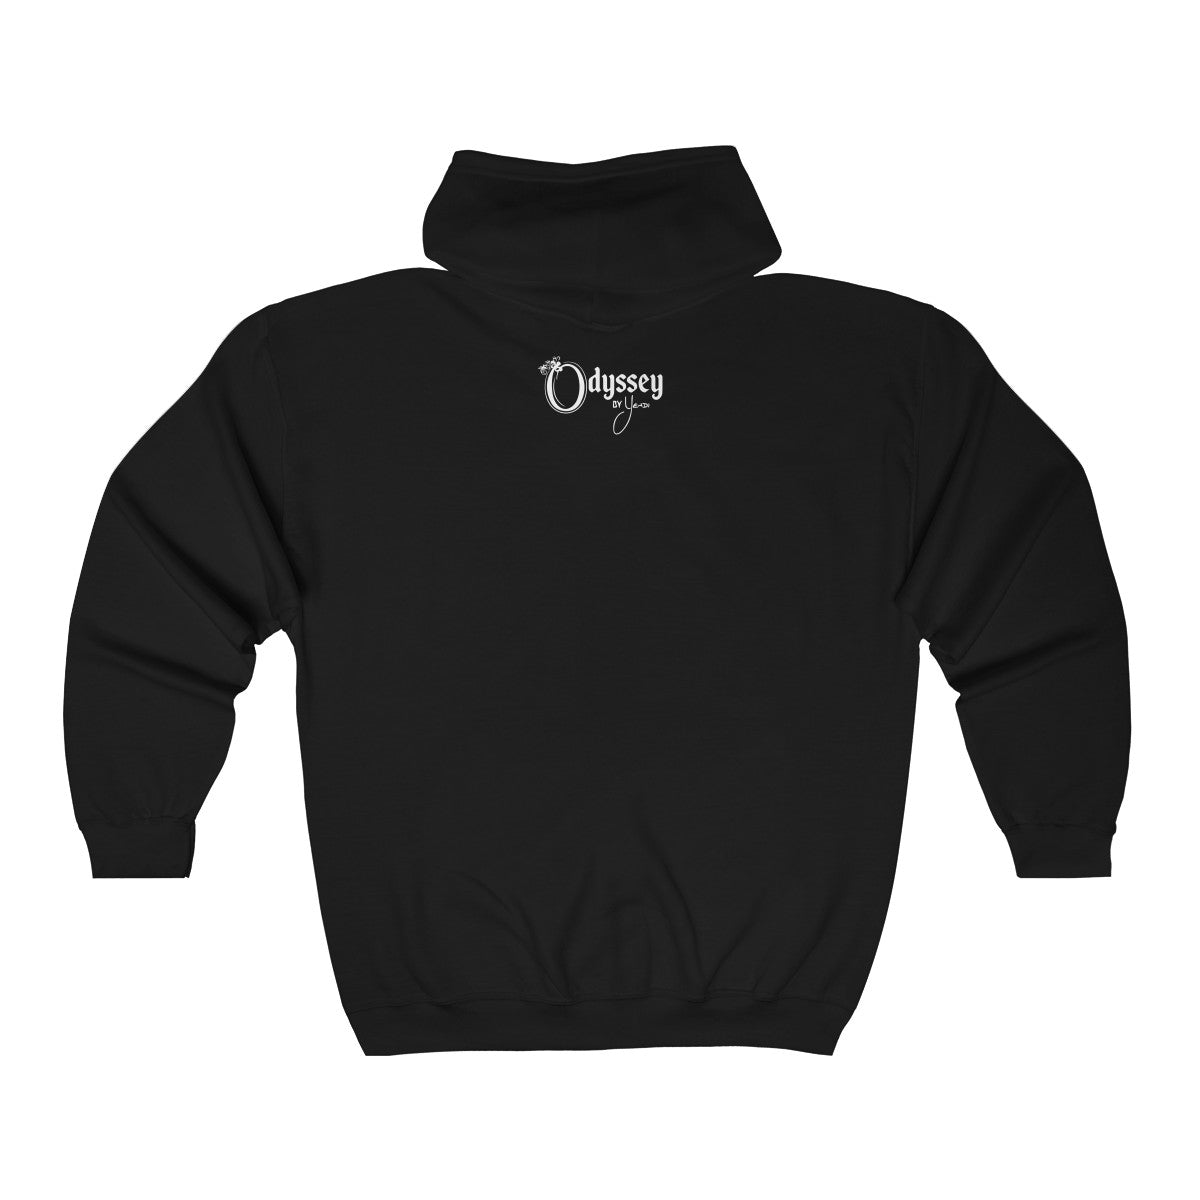 Odyssey Cross My Heart Men's Hoodies - White